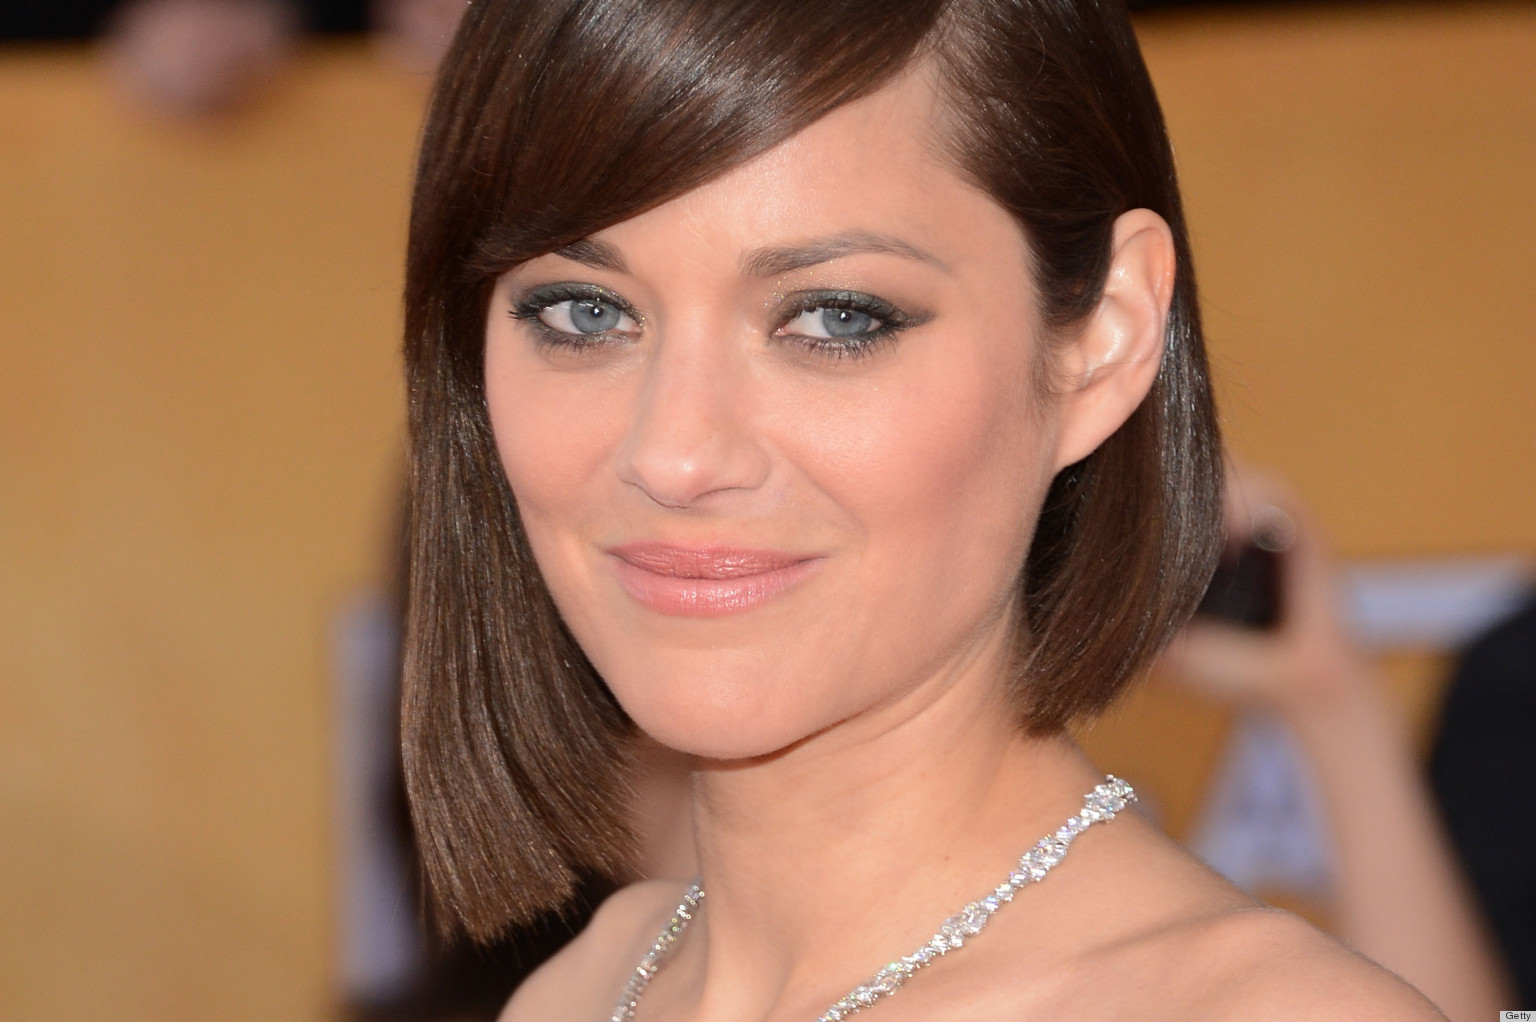 LOS ANGELES, CA - JANUARY 27:  Actress Marion Cotillard attends the 19th Annual Screen Actors Guild Awards at The Shrine Auditorium on January 27, 2013 in Los Angeles, California.  (Photo by Jason Kempin/Getty Images)